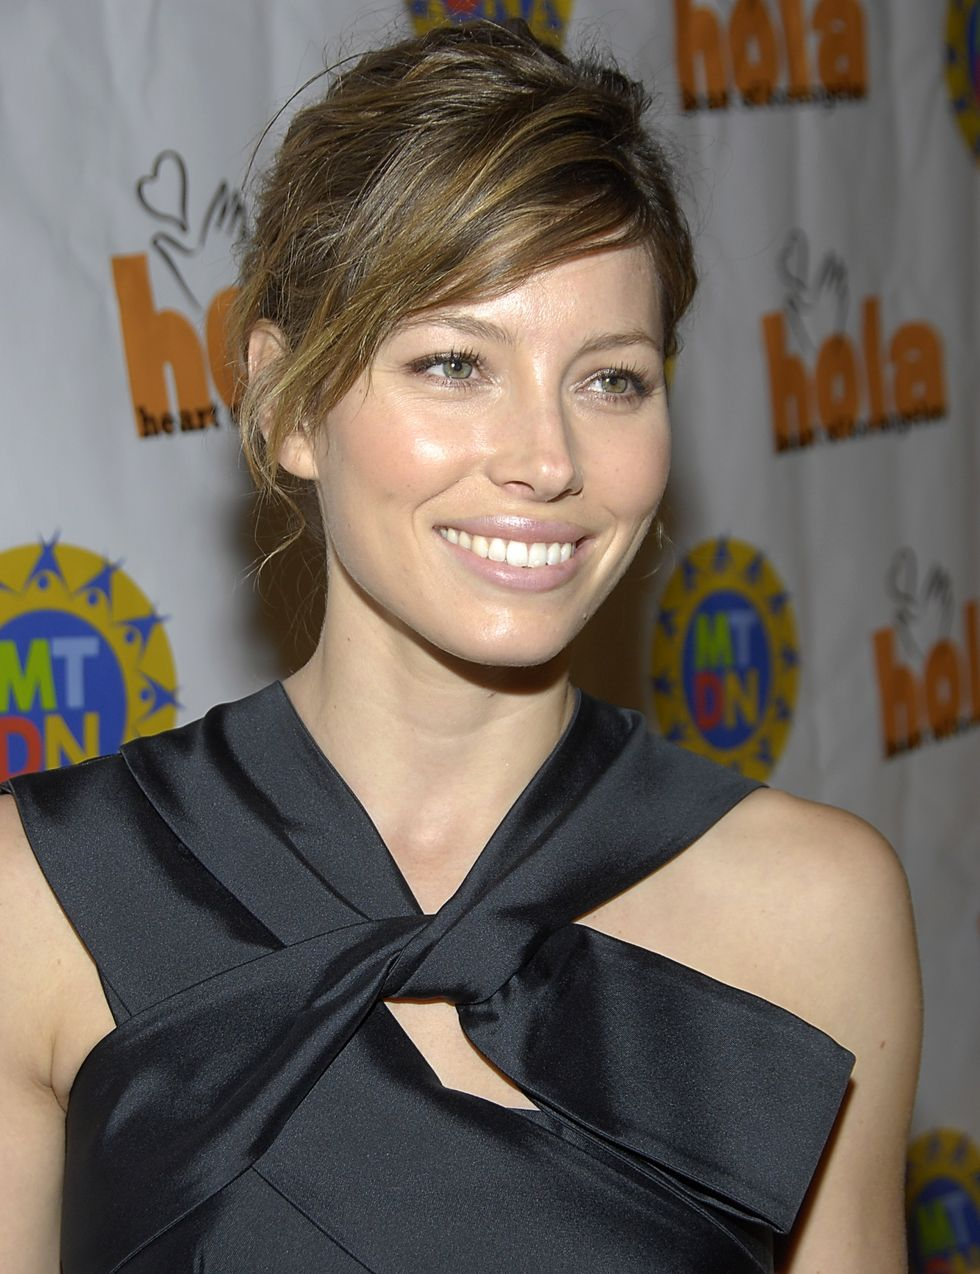 jessica-biel-heart-of-los-angeles-holiday-of-the-heart-gala-in-los-angeles-01